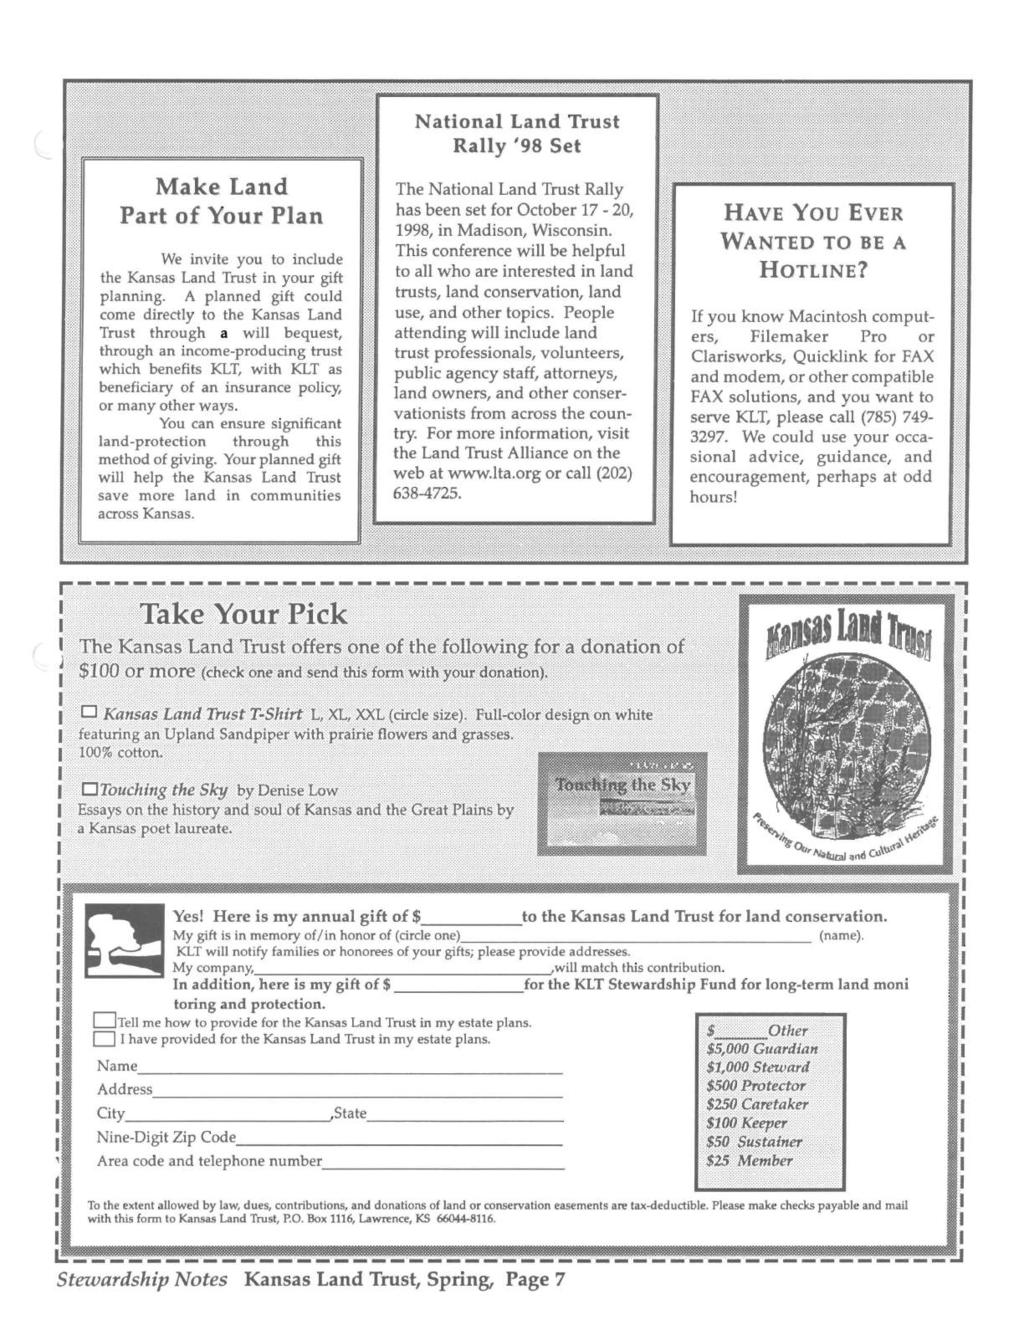 Make Land Part of Your Plan We invite you to include the Kansas Land Trust in your gift planning.